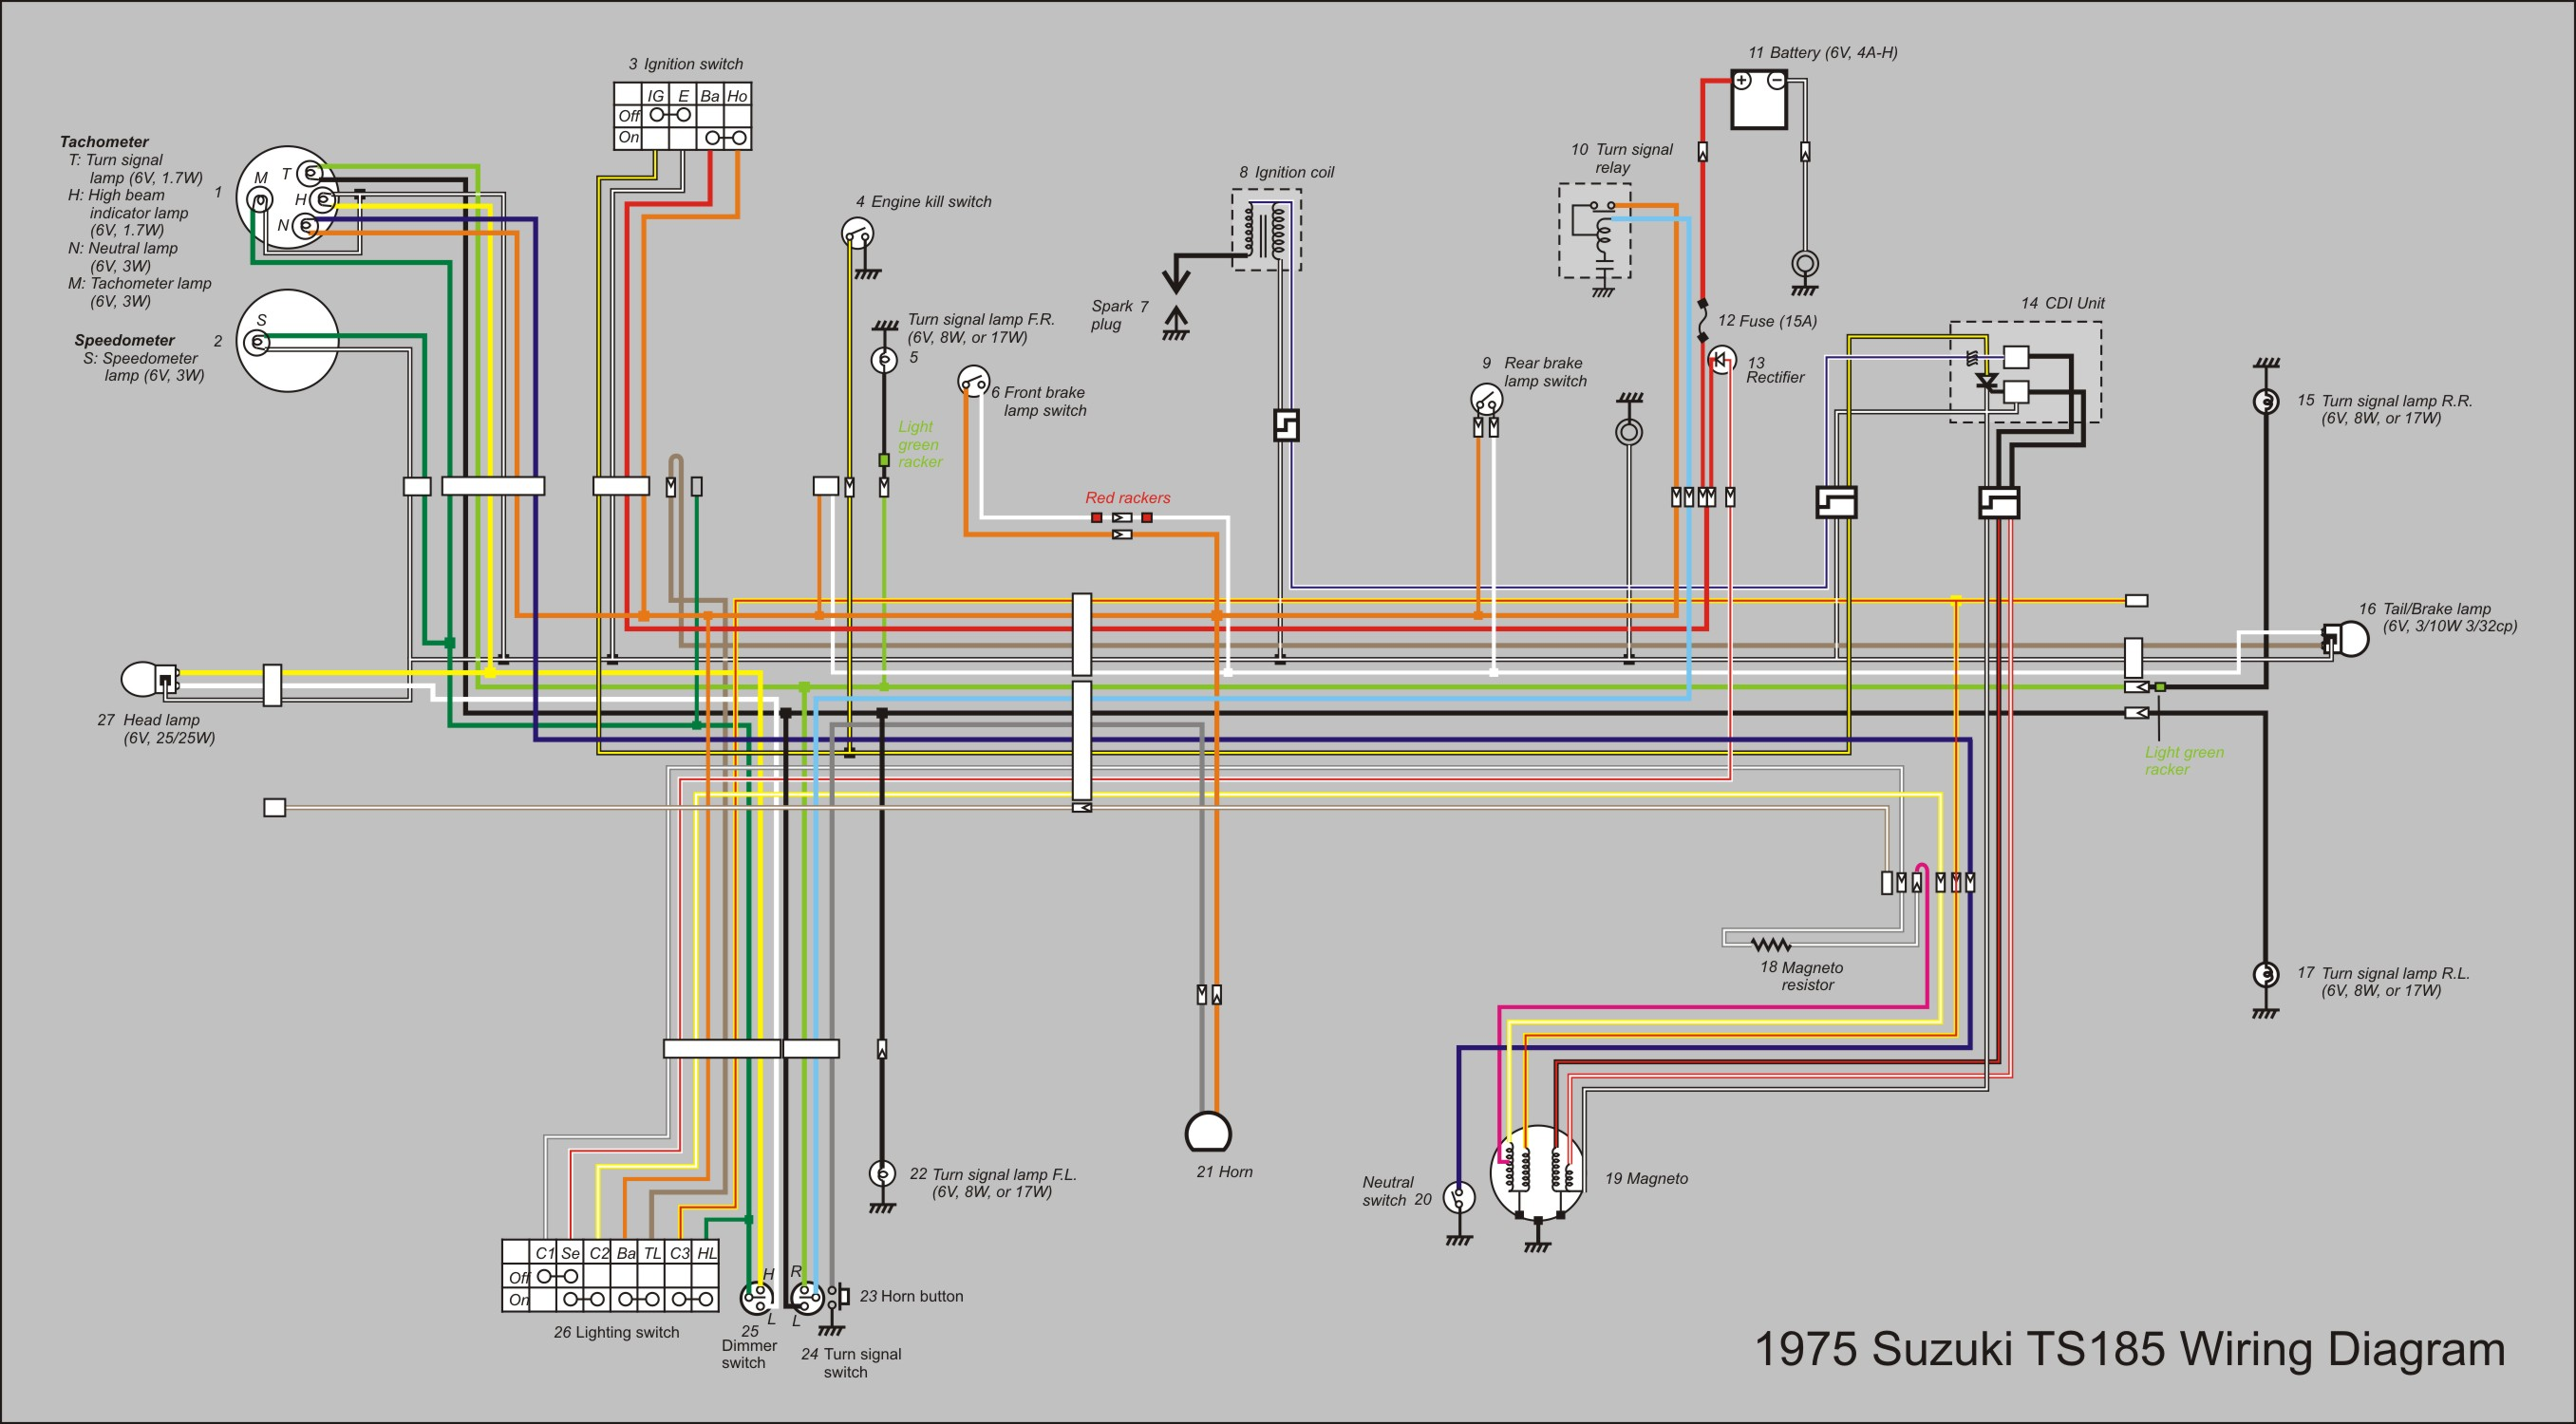 Filets185 Wiring Diagram New Wikimedia Commons Relay In Addition 4 Wire Trailer Lights